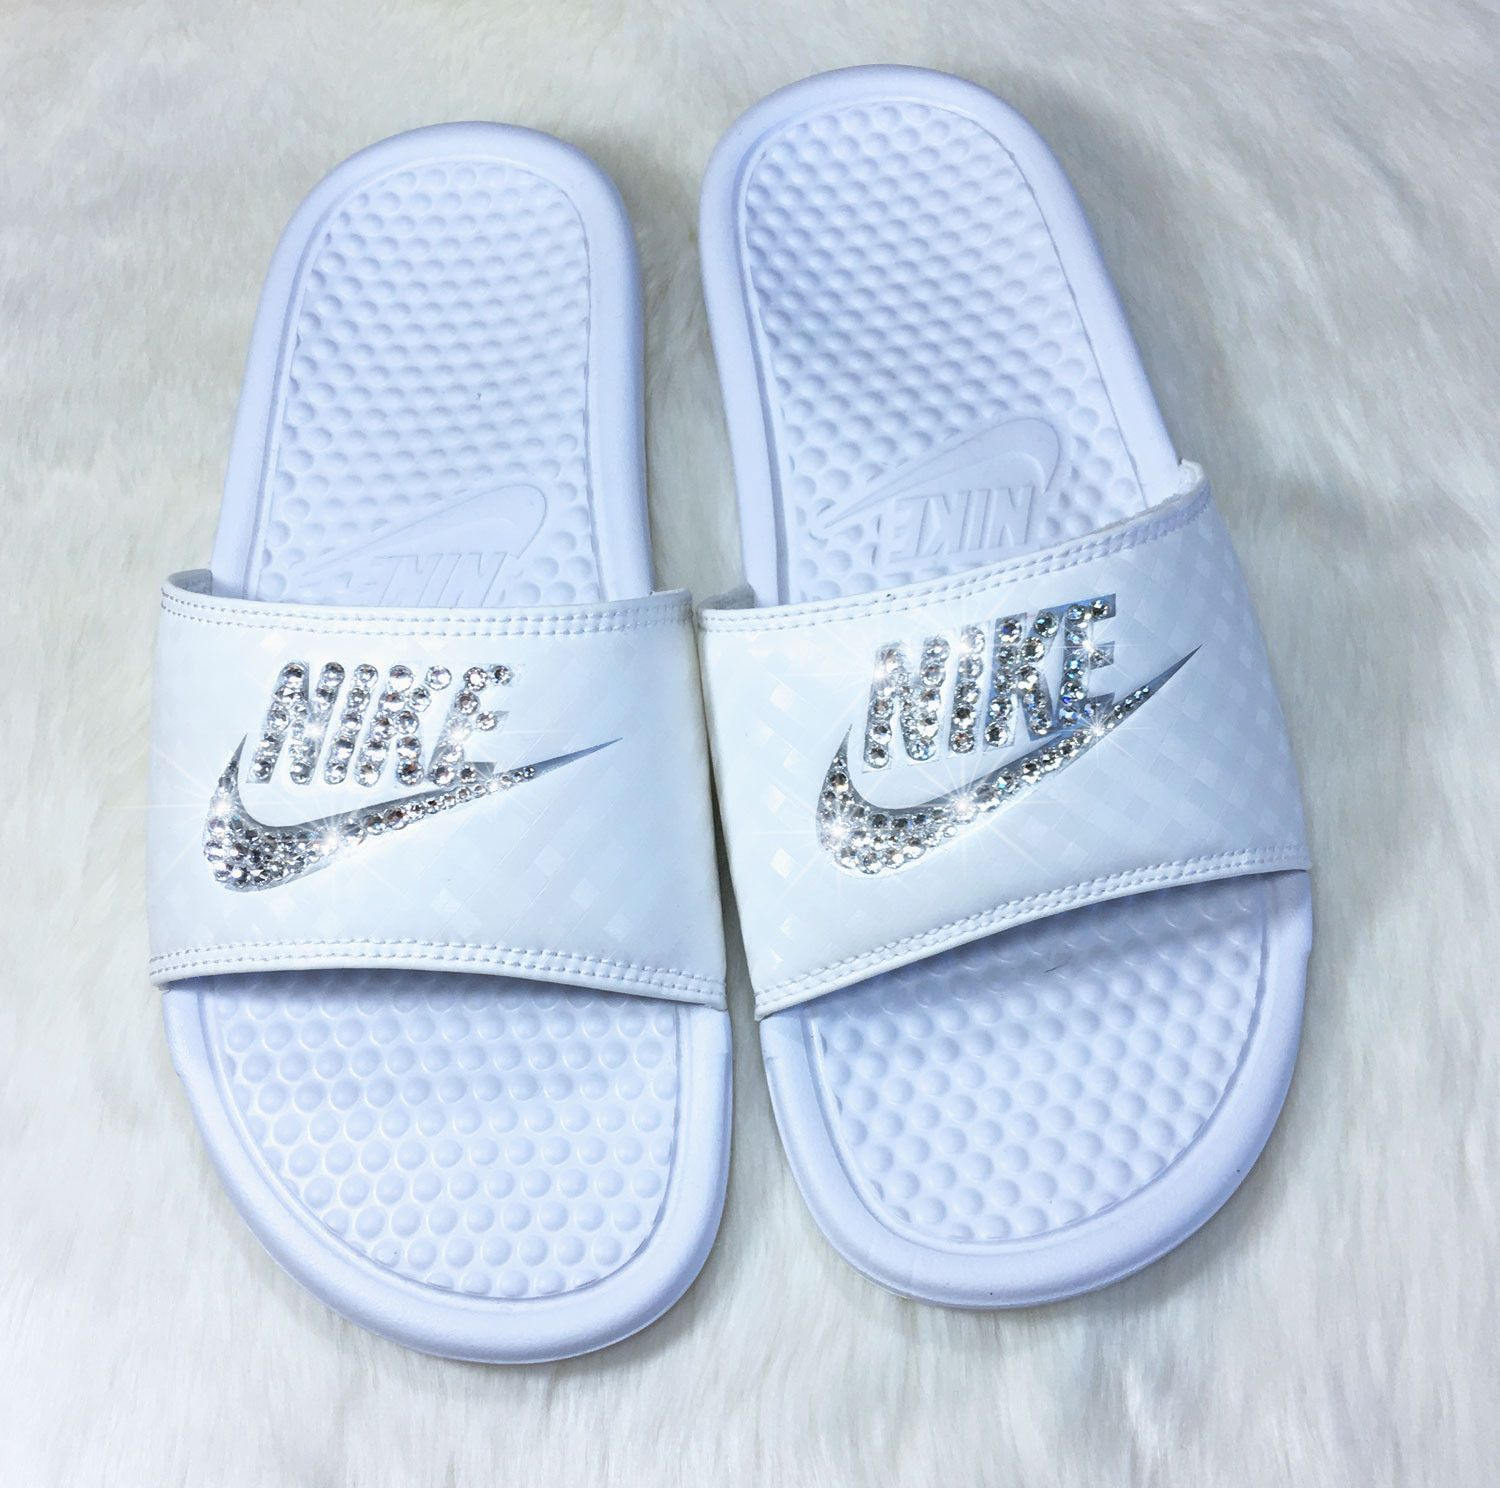 8152a33aae95 Slide into Summer with these Sparkling Nike Slide Sandals! Custom hand  jeweled with genuine Swarovski Crystals